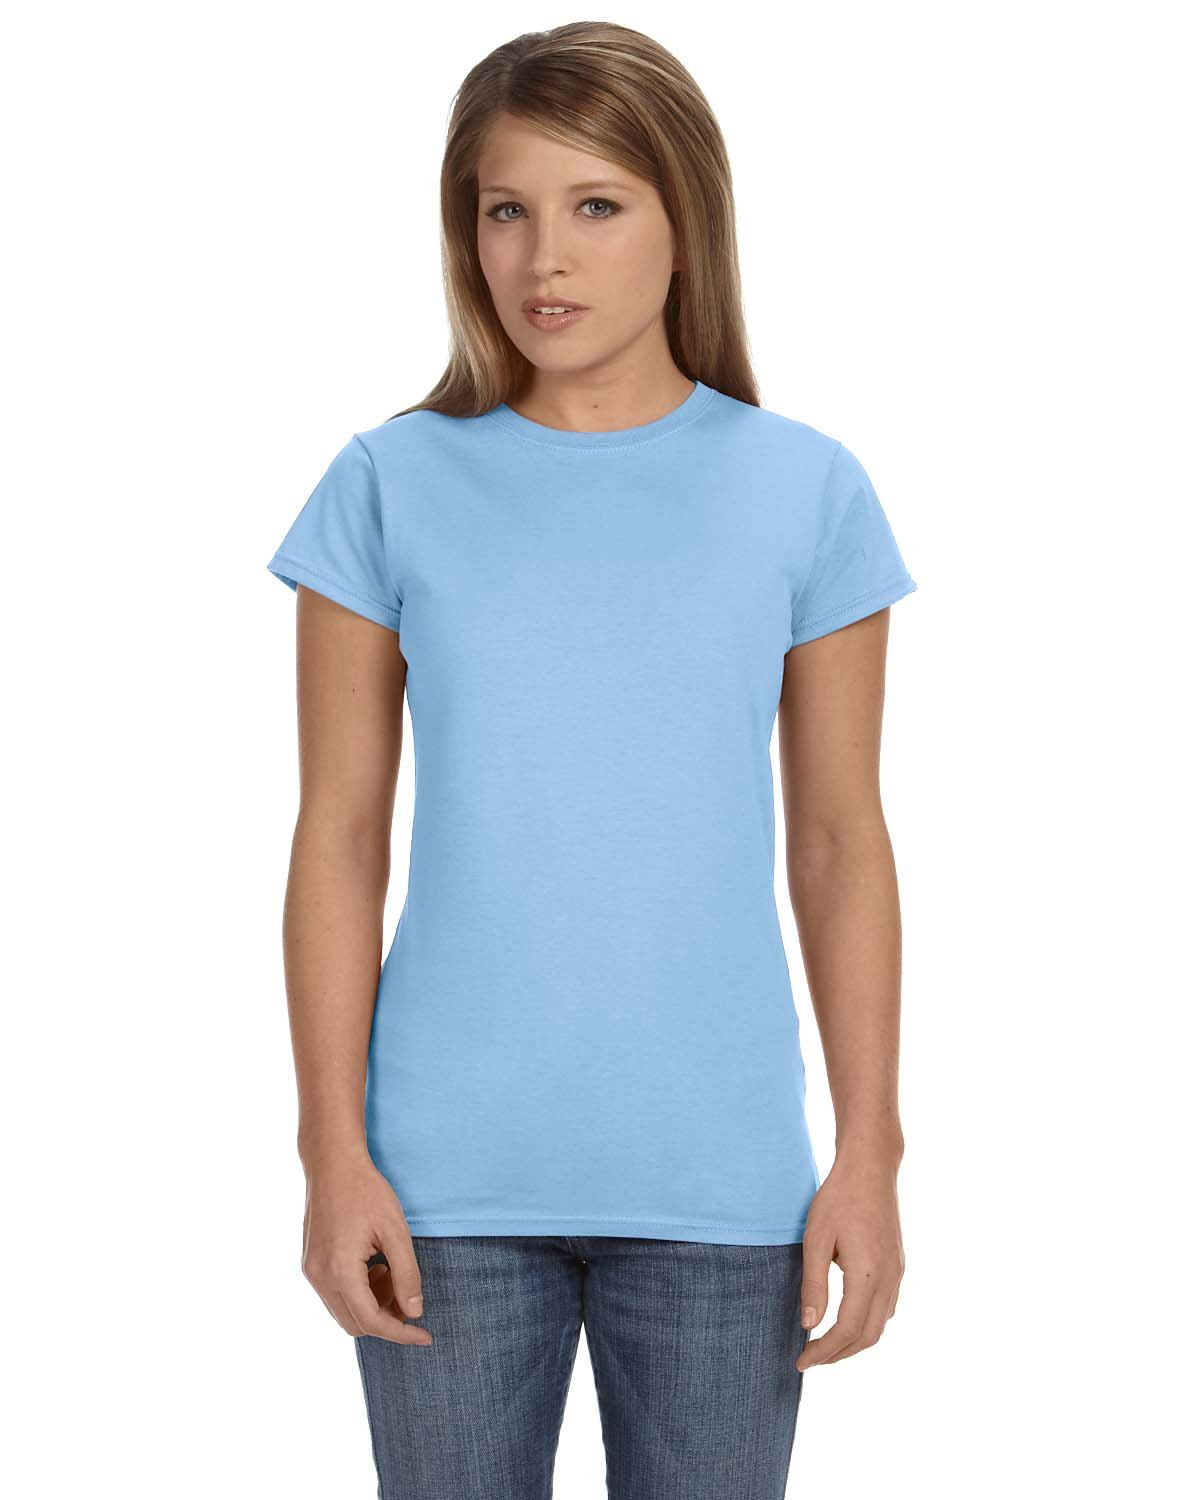 Gildan Ladies' Softstyle® 4.5 oz Fitted T-Shirt LIGHT BLUE